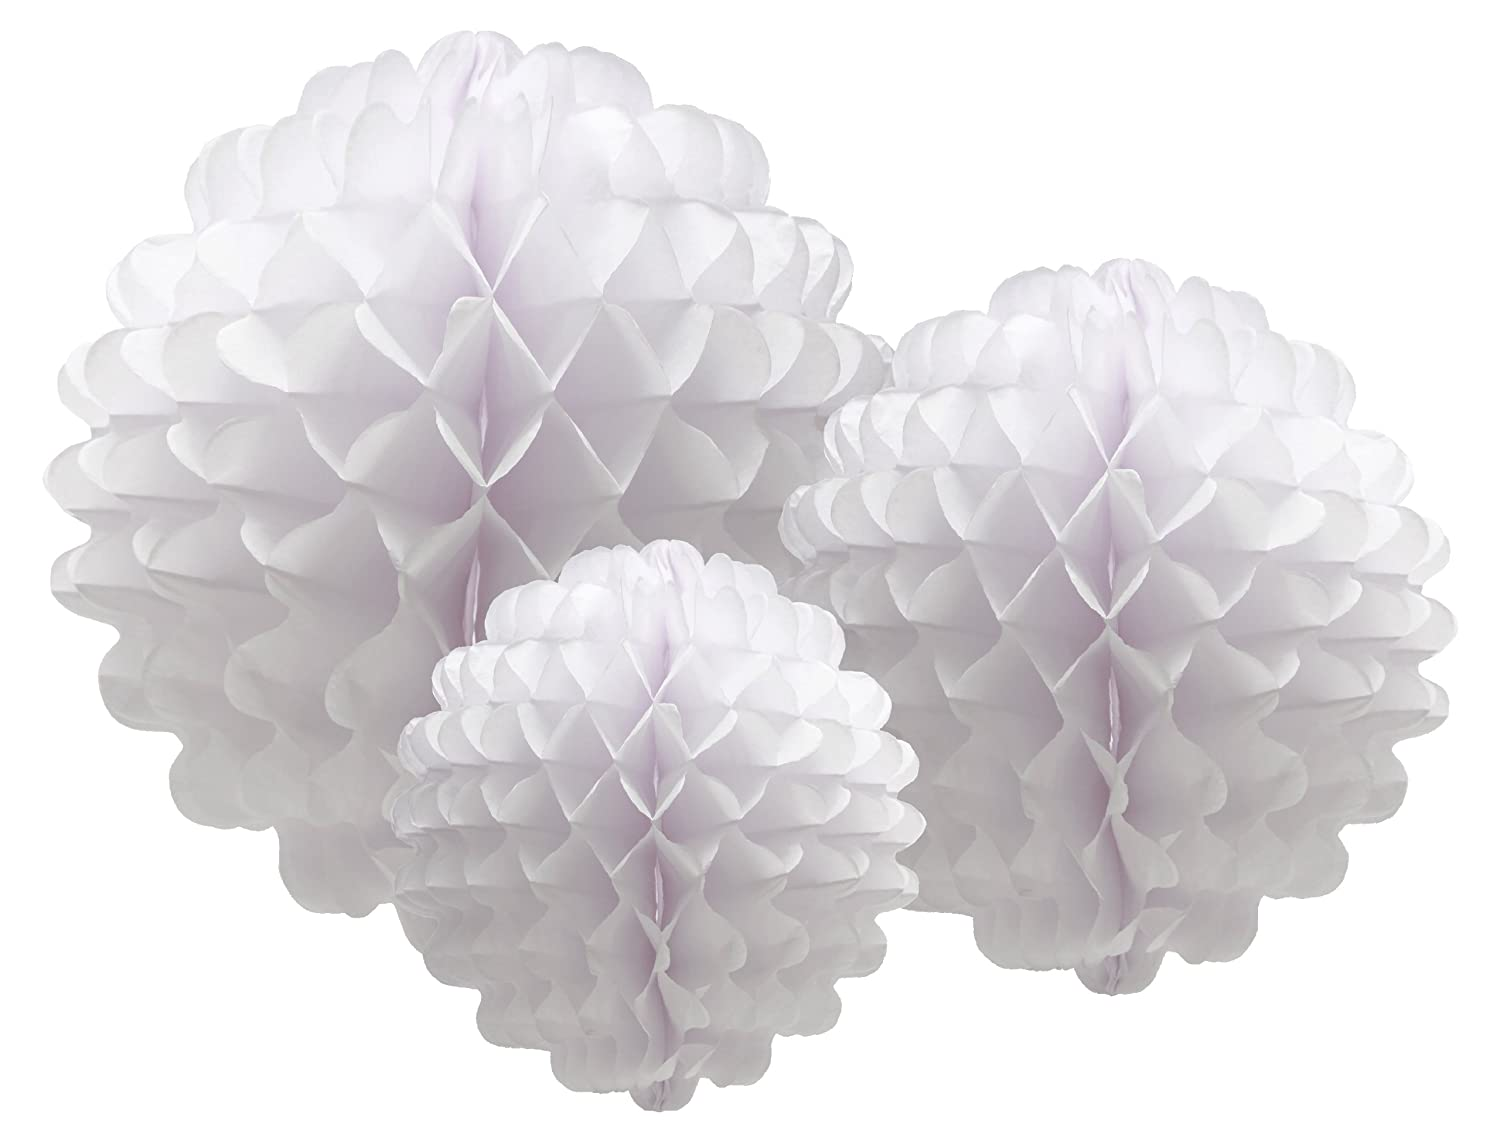 Amazon.com: Party Partners Design Hanging Honeycomb Tissue White Pom ...